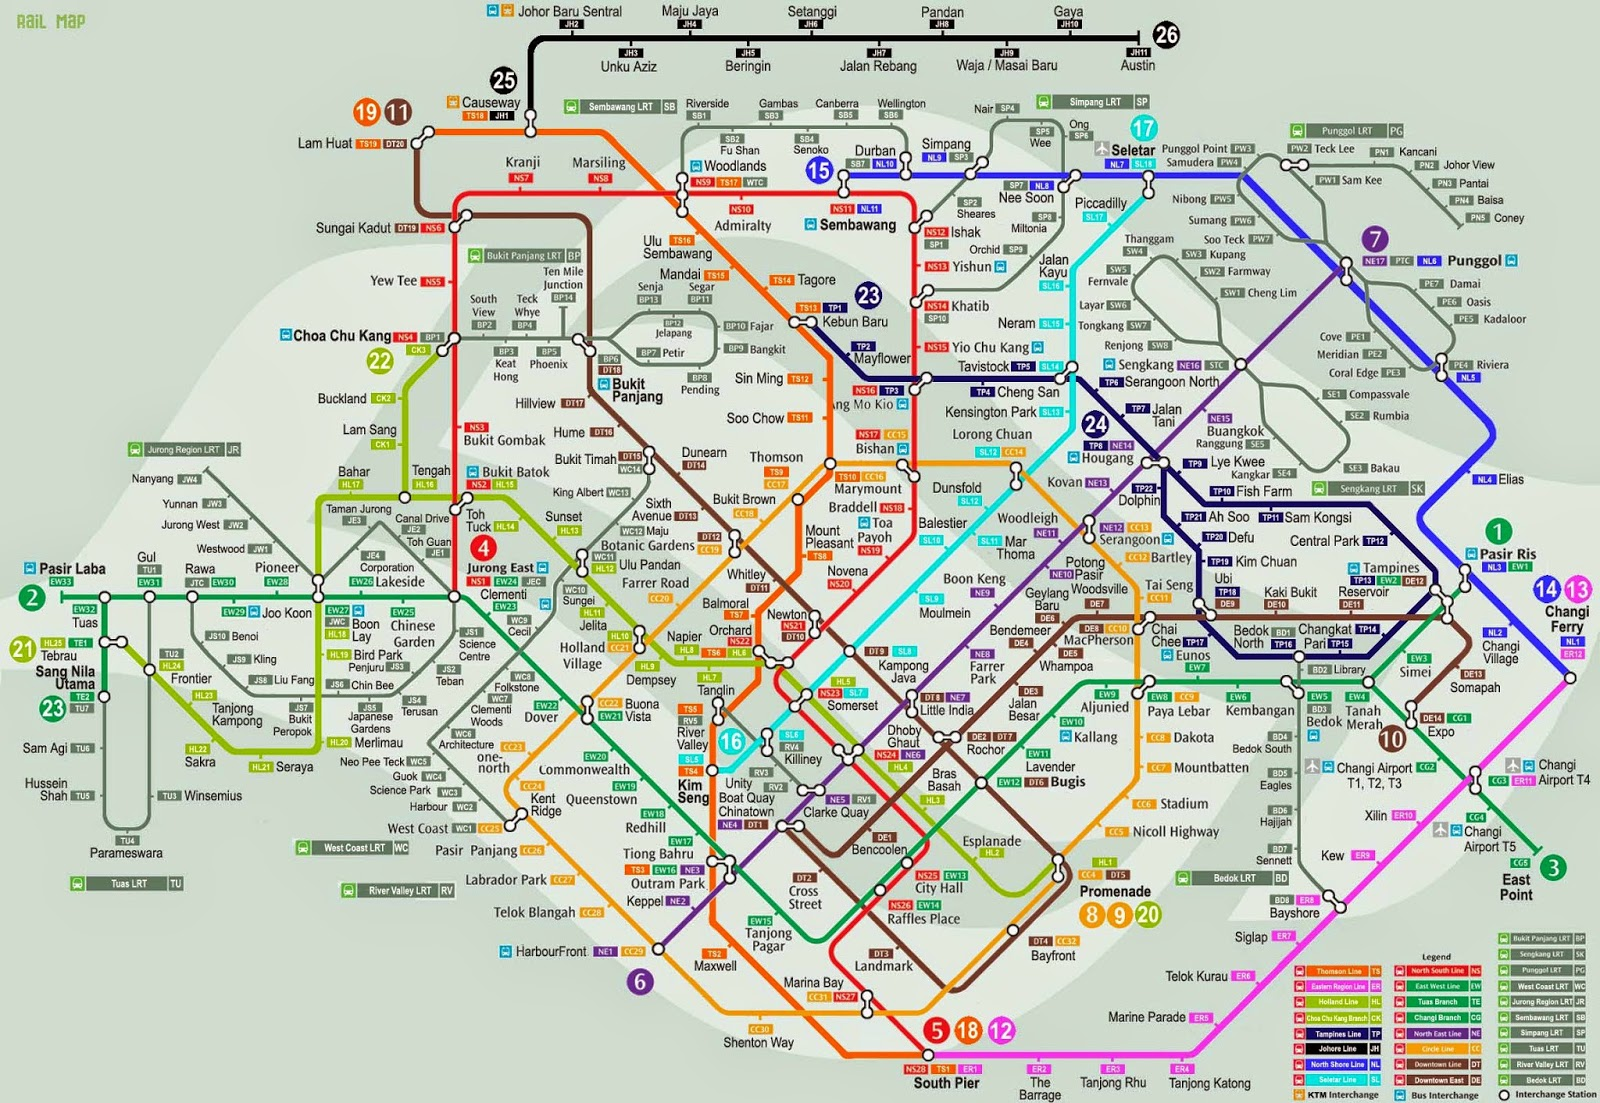 MRT Singapore Maps 2015 & Future Line